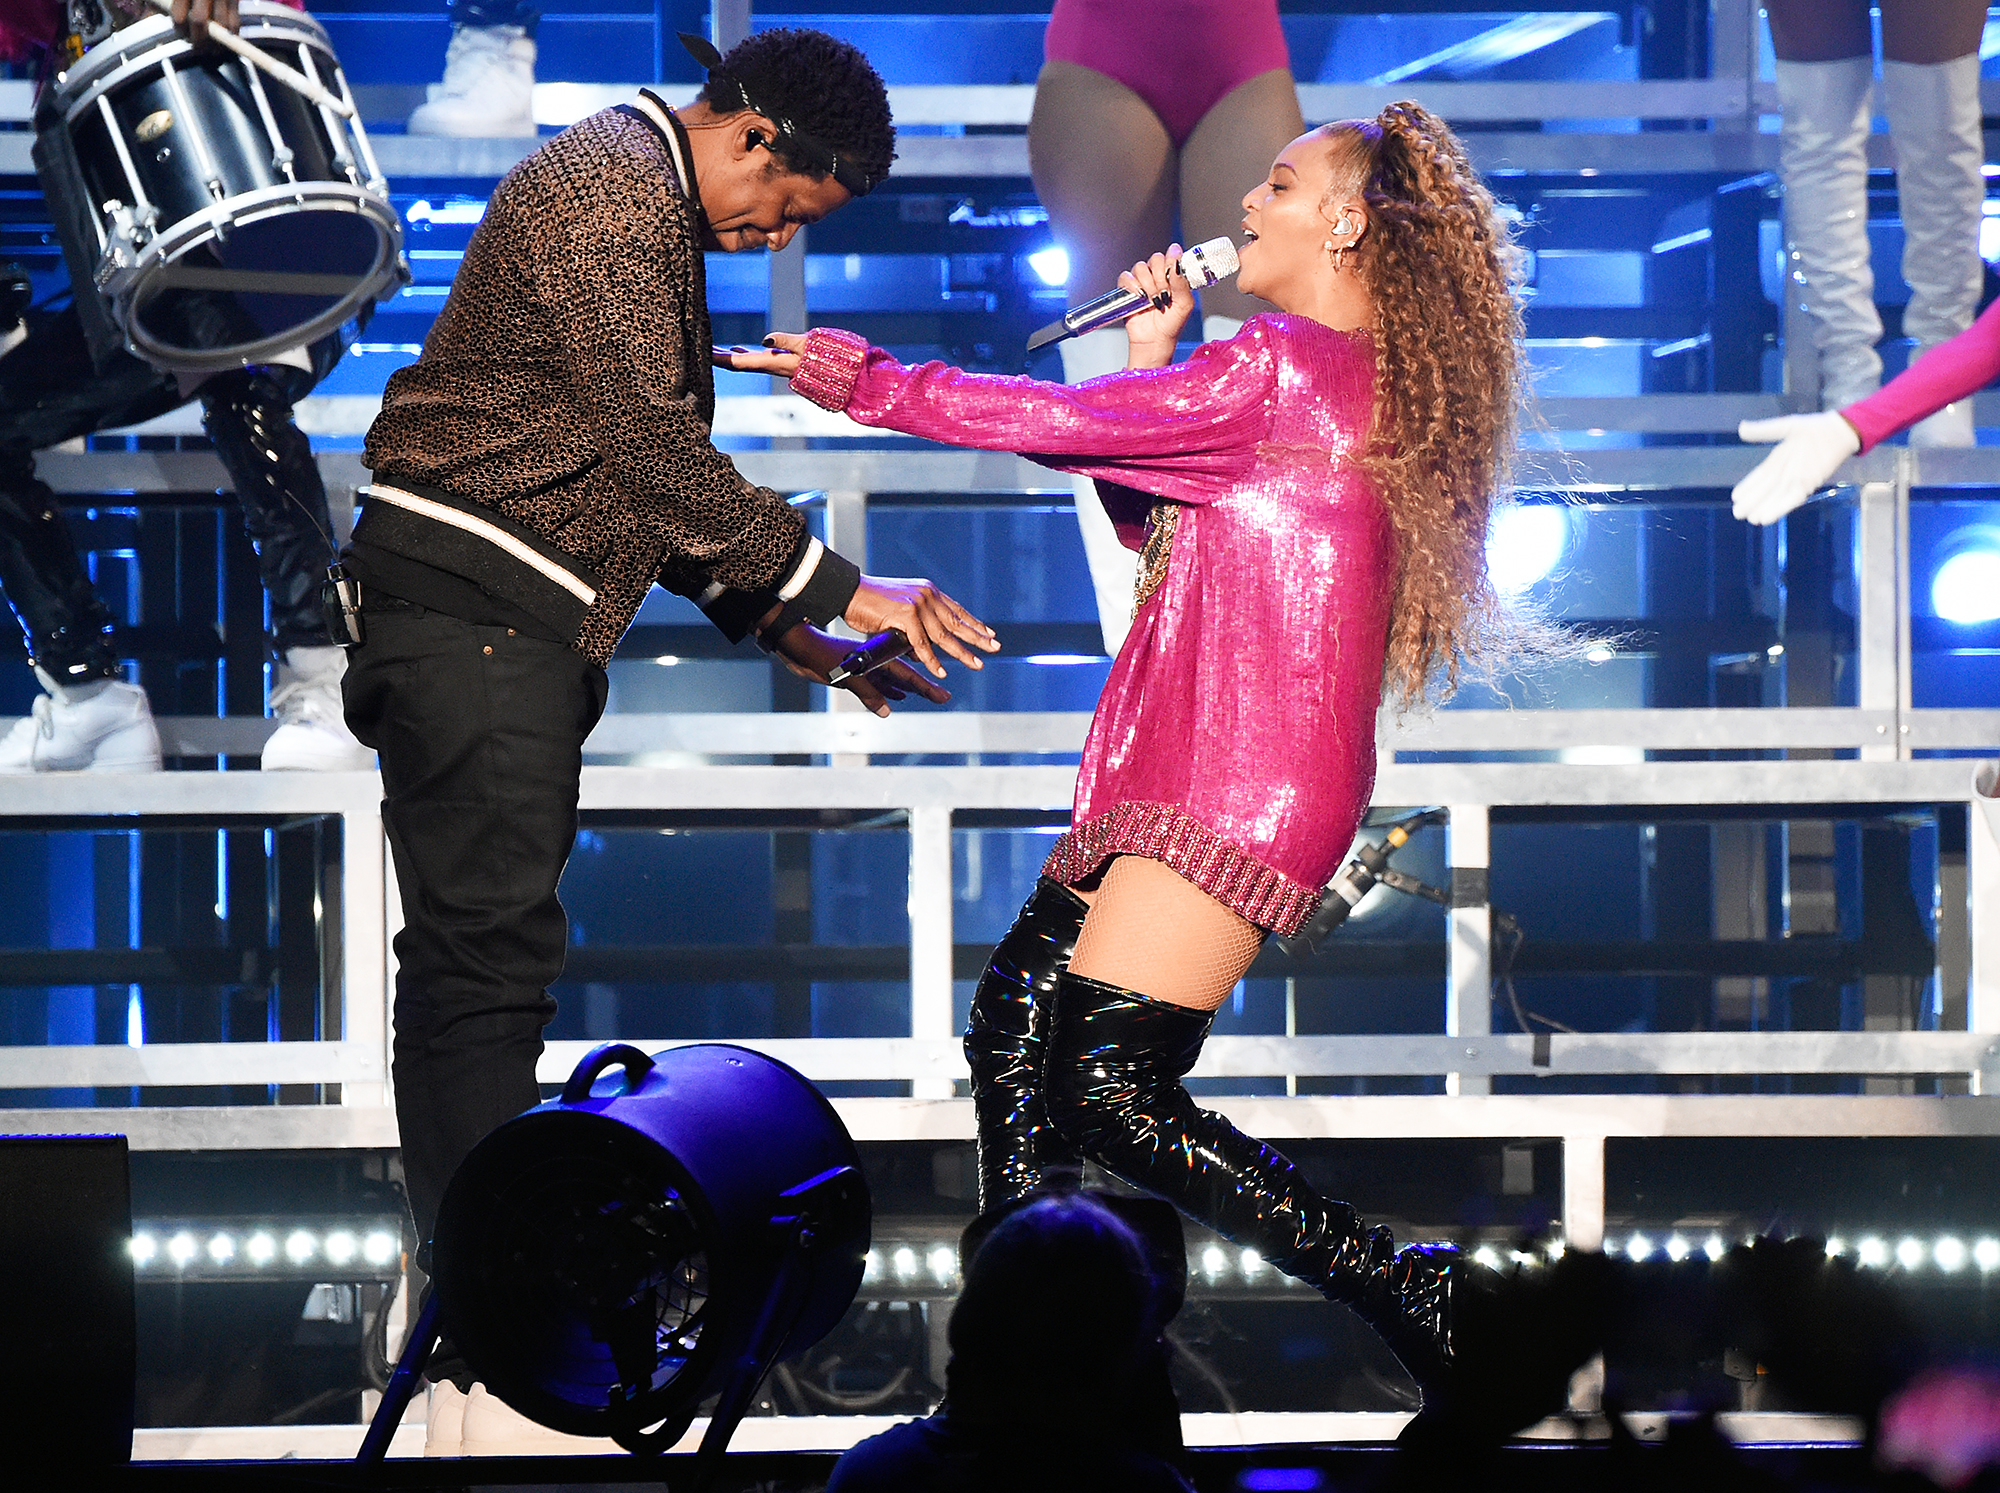 """Jay-Z Beyonce Coachella - Jay-Z made a surprise guest appearance during Beyoncé's headlining set at the Coachella Valley Music and Arts Festival. They performed their 2006 collaboration """"Déjà Vu."""""""